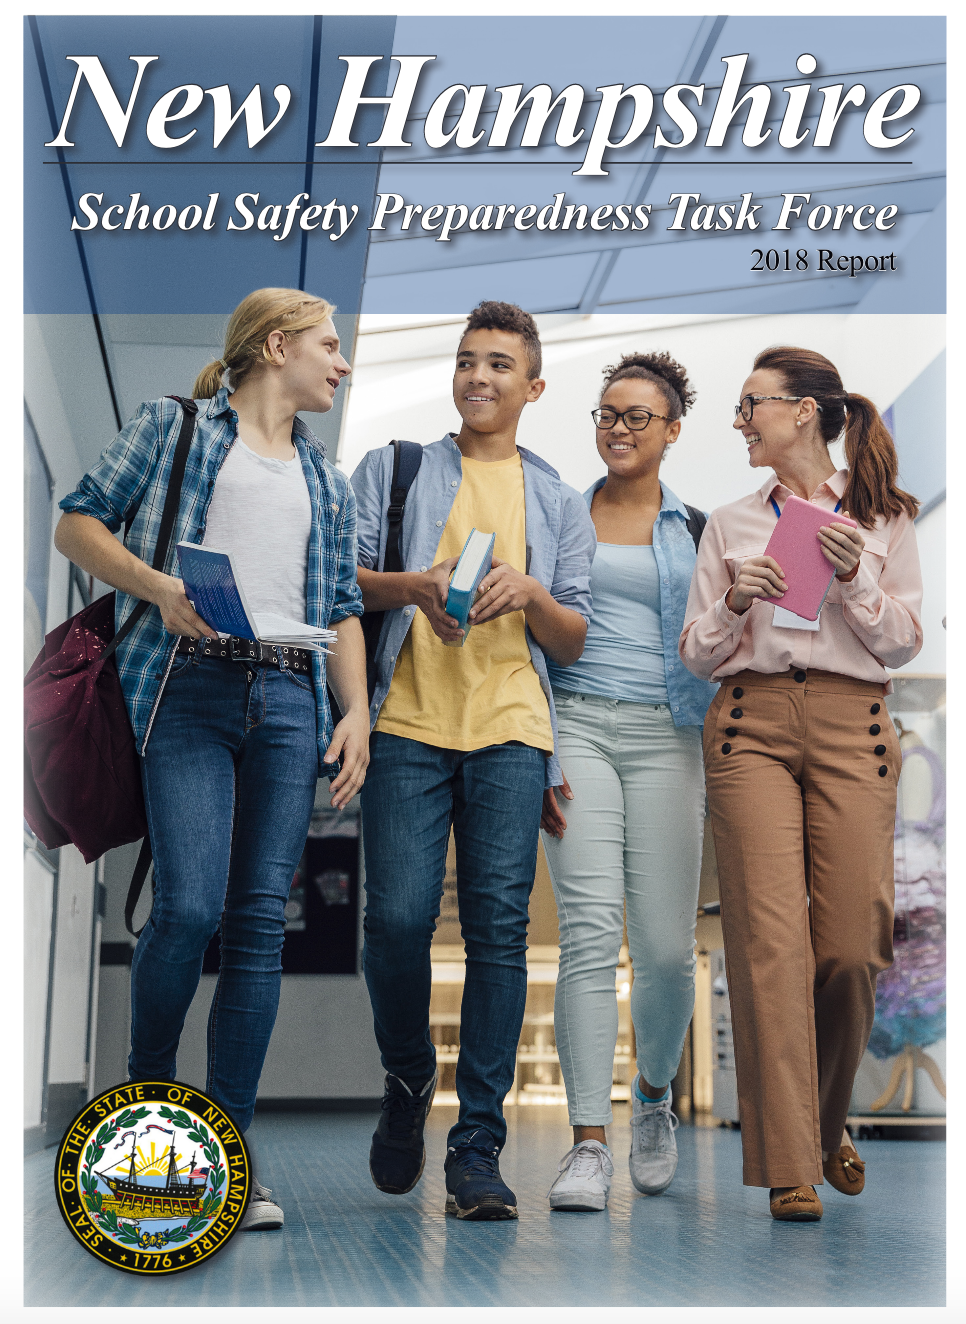 DOWNLOAD THE 2018 TASK FORCE REPORT